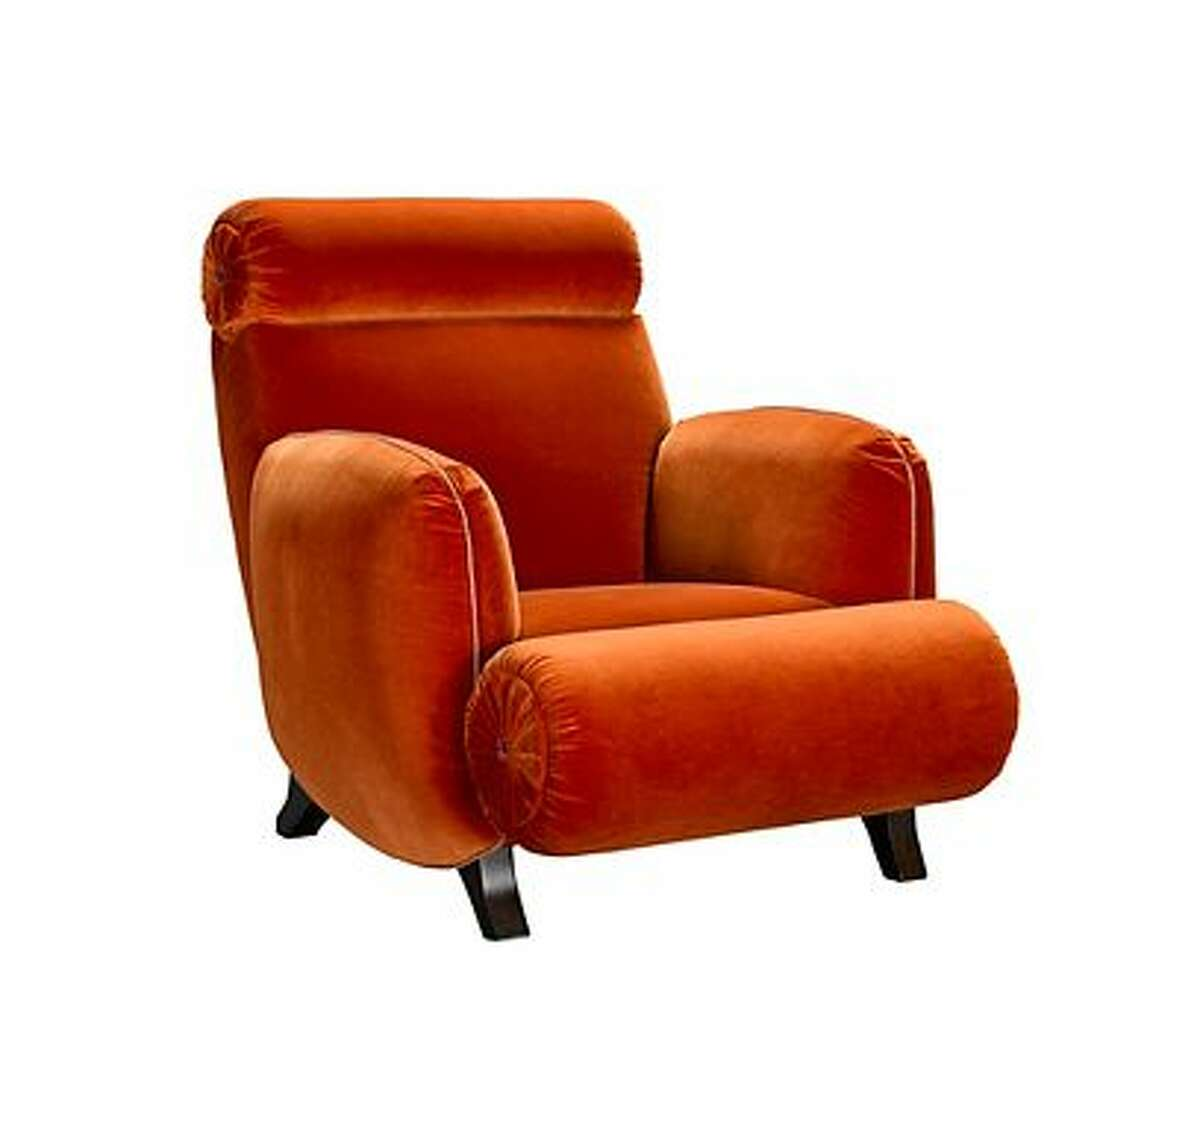 Bold: Jeffrey Bilhuber's Bolton Road chair for Henredon makes a bold statement with this velvety orange upholstery and mid-century touch.